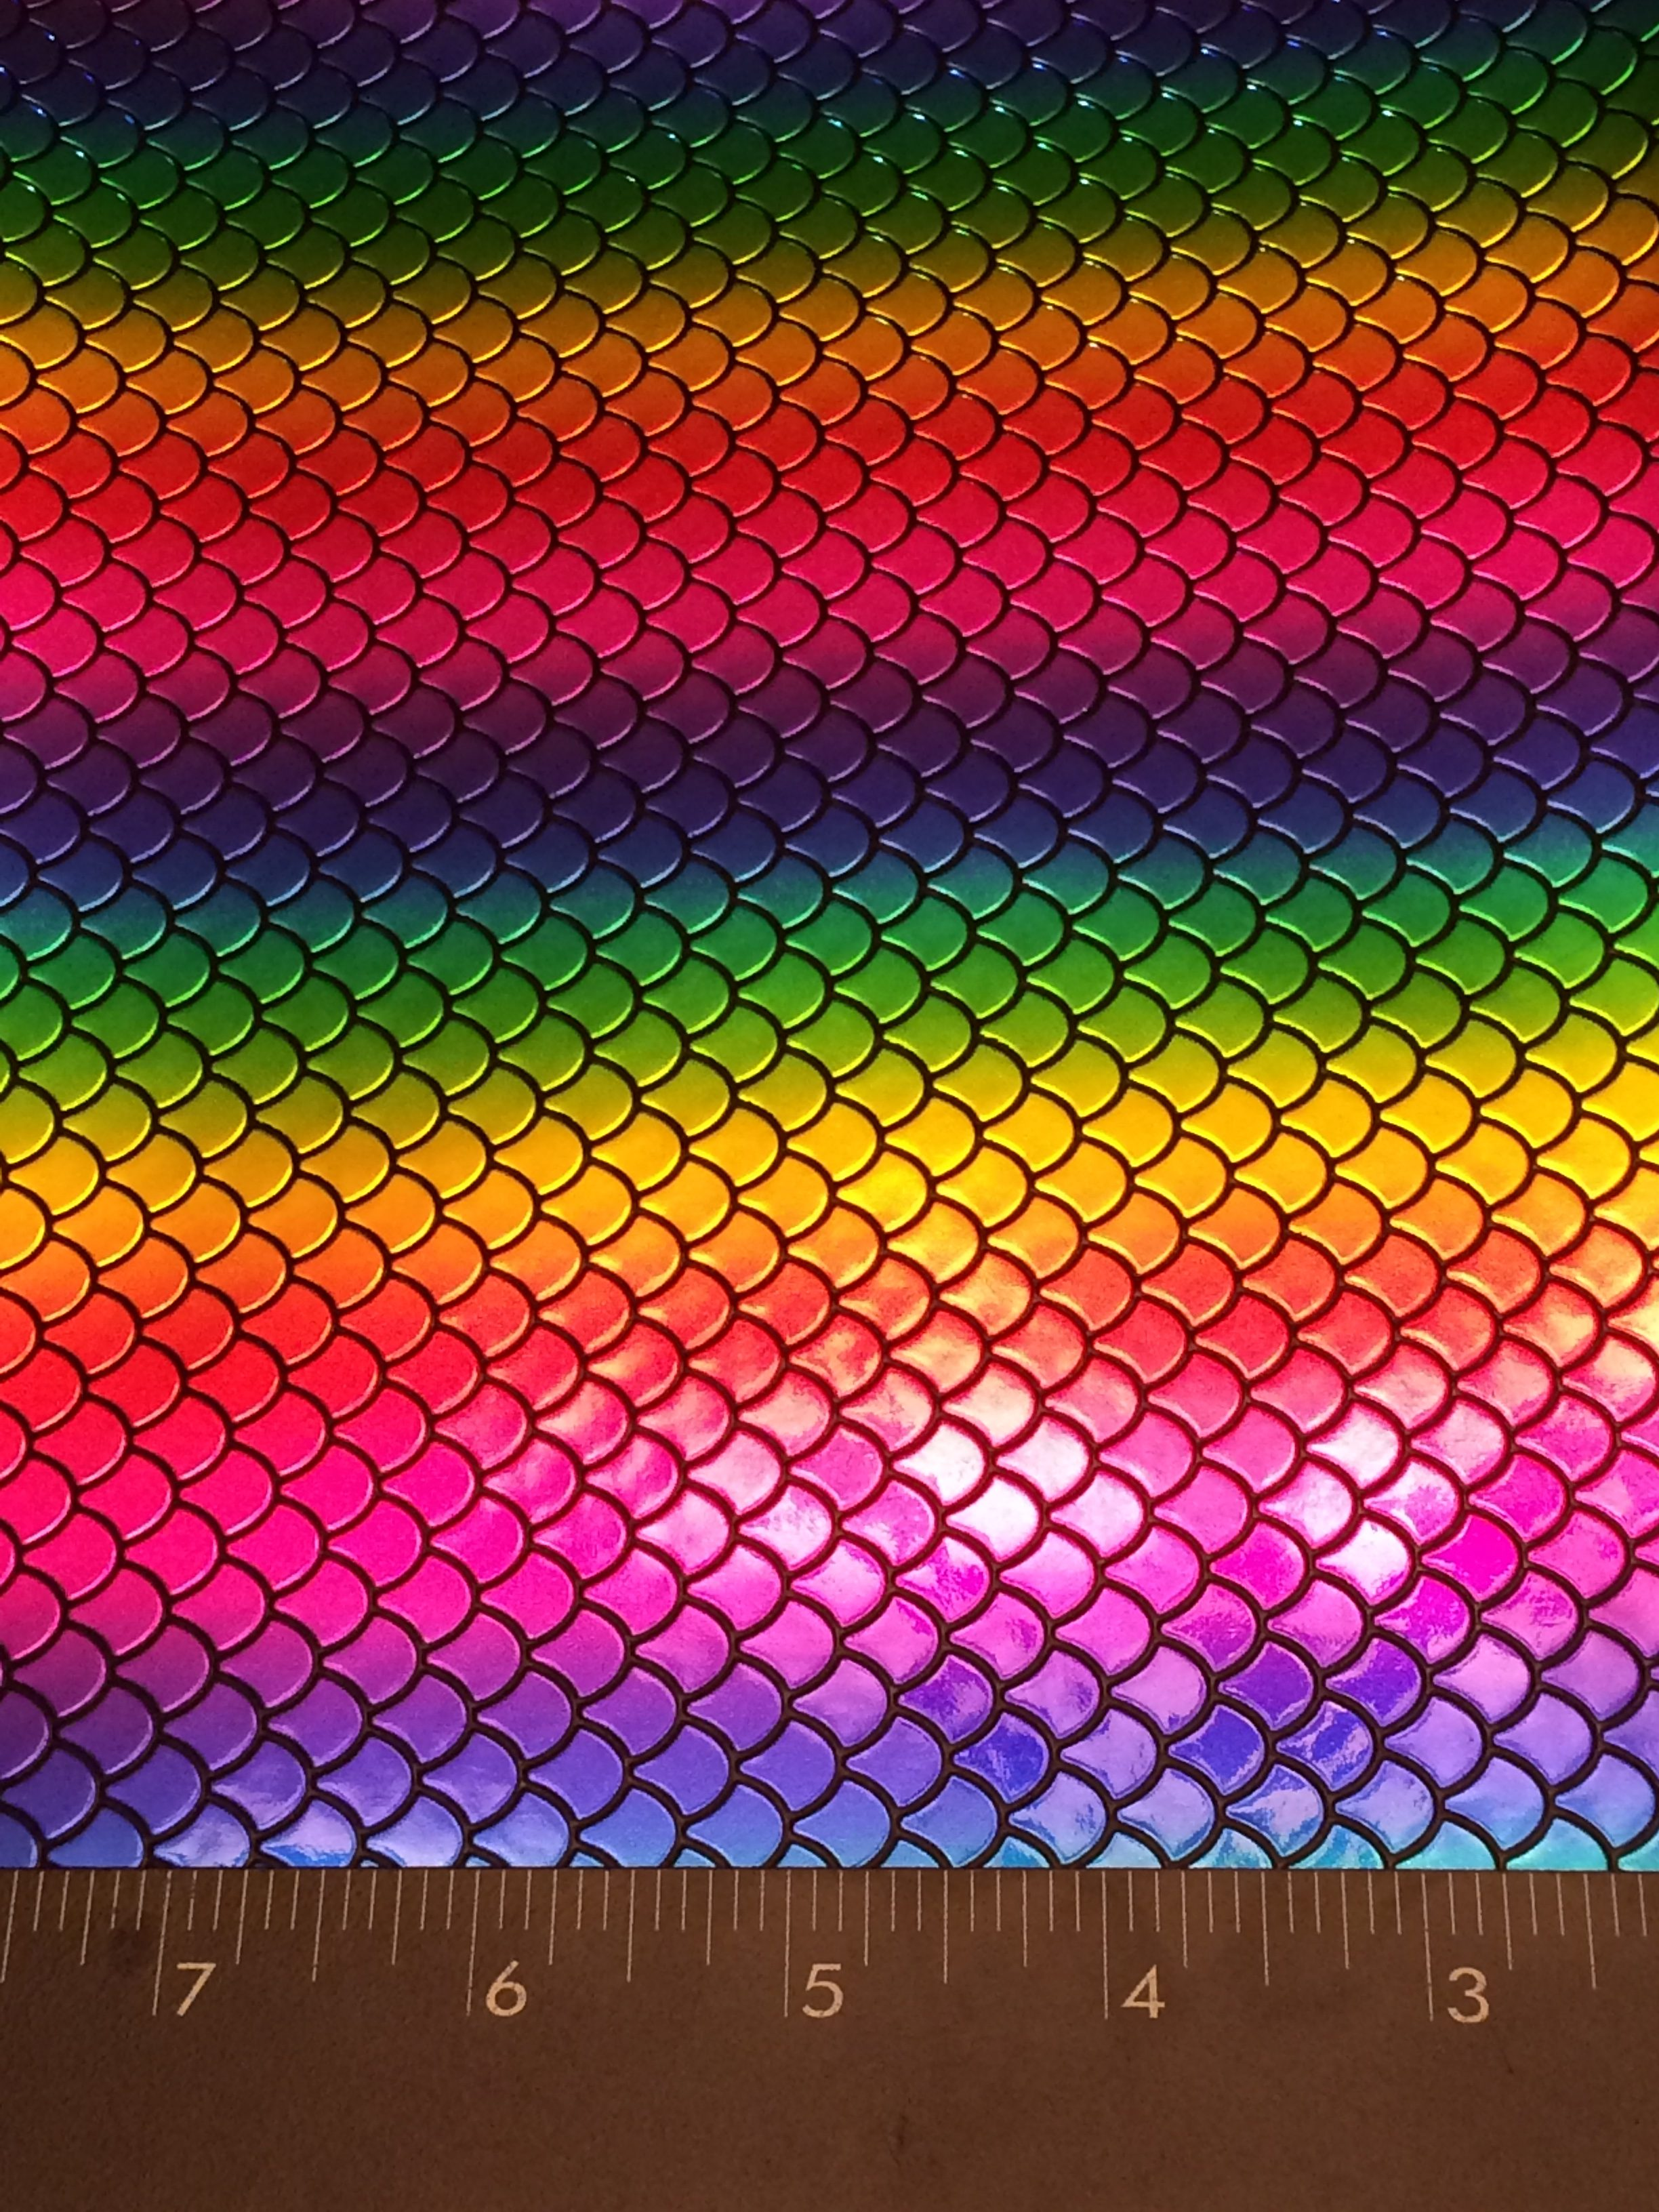 Mermaid - Mermaid Scales - Shiny Rainbow vinyl sheet